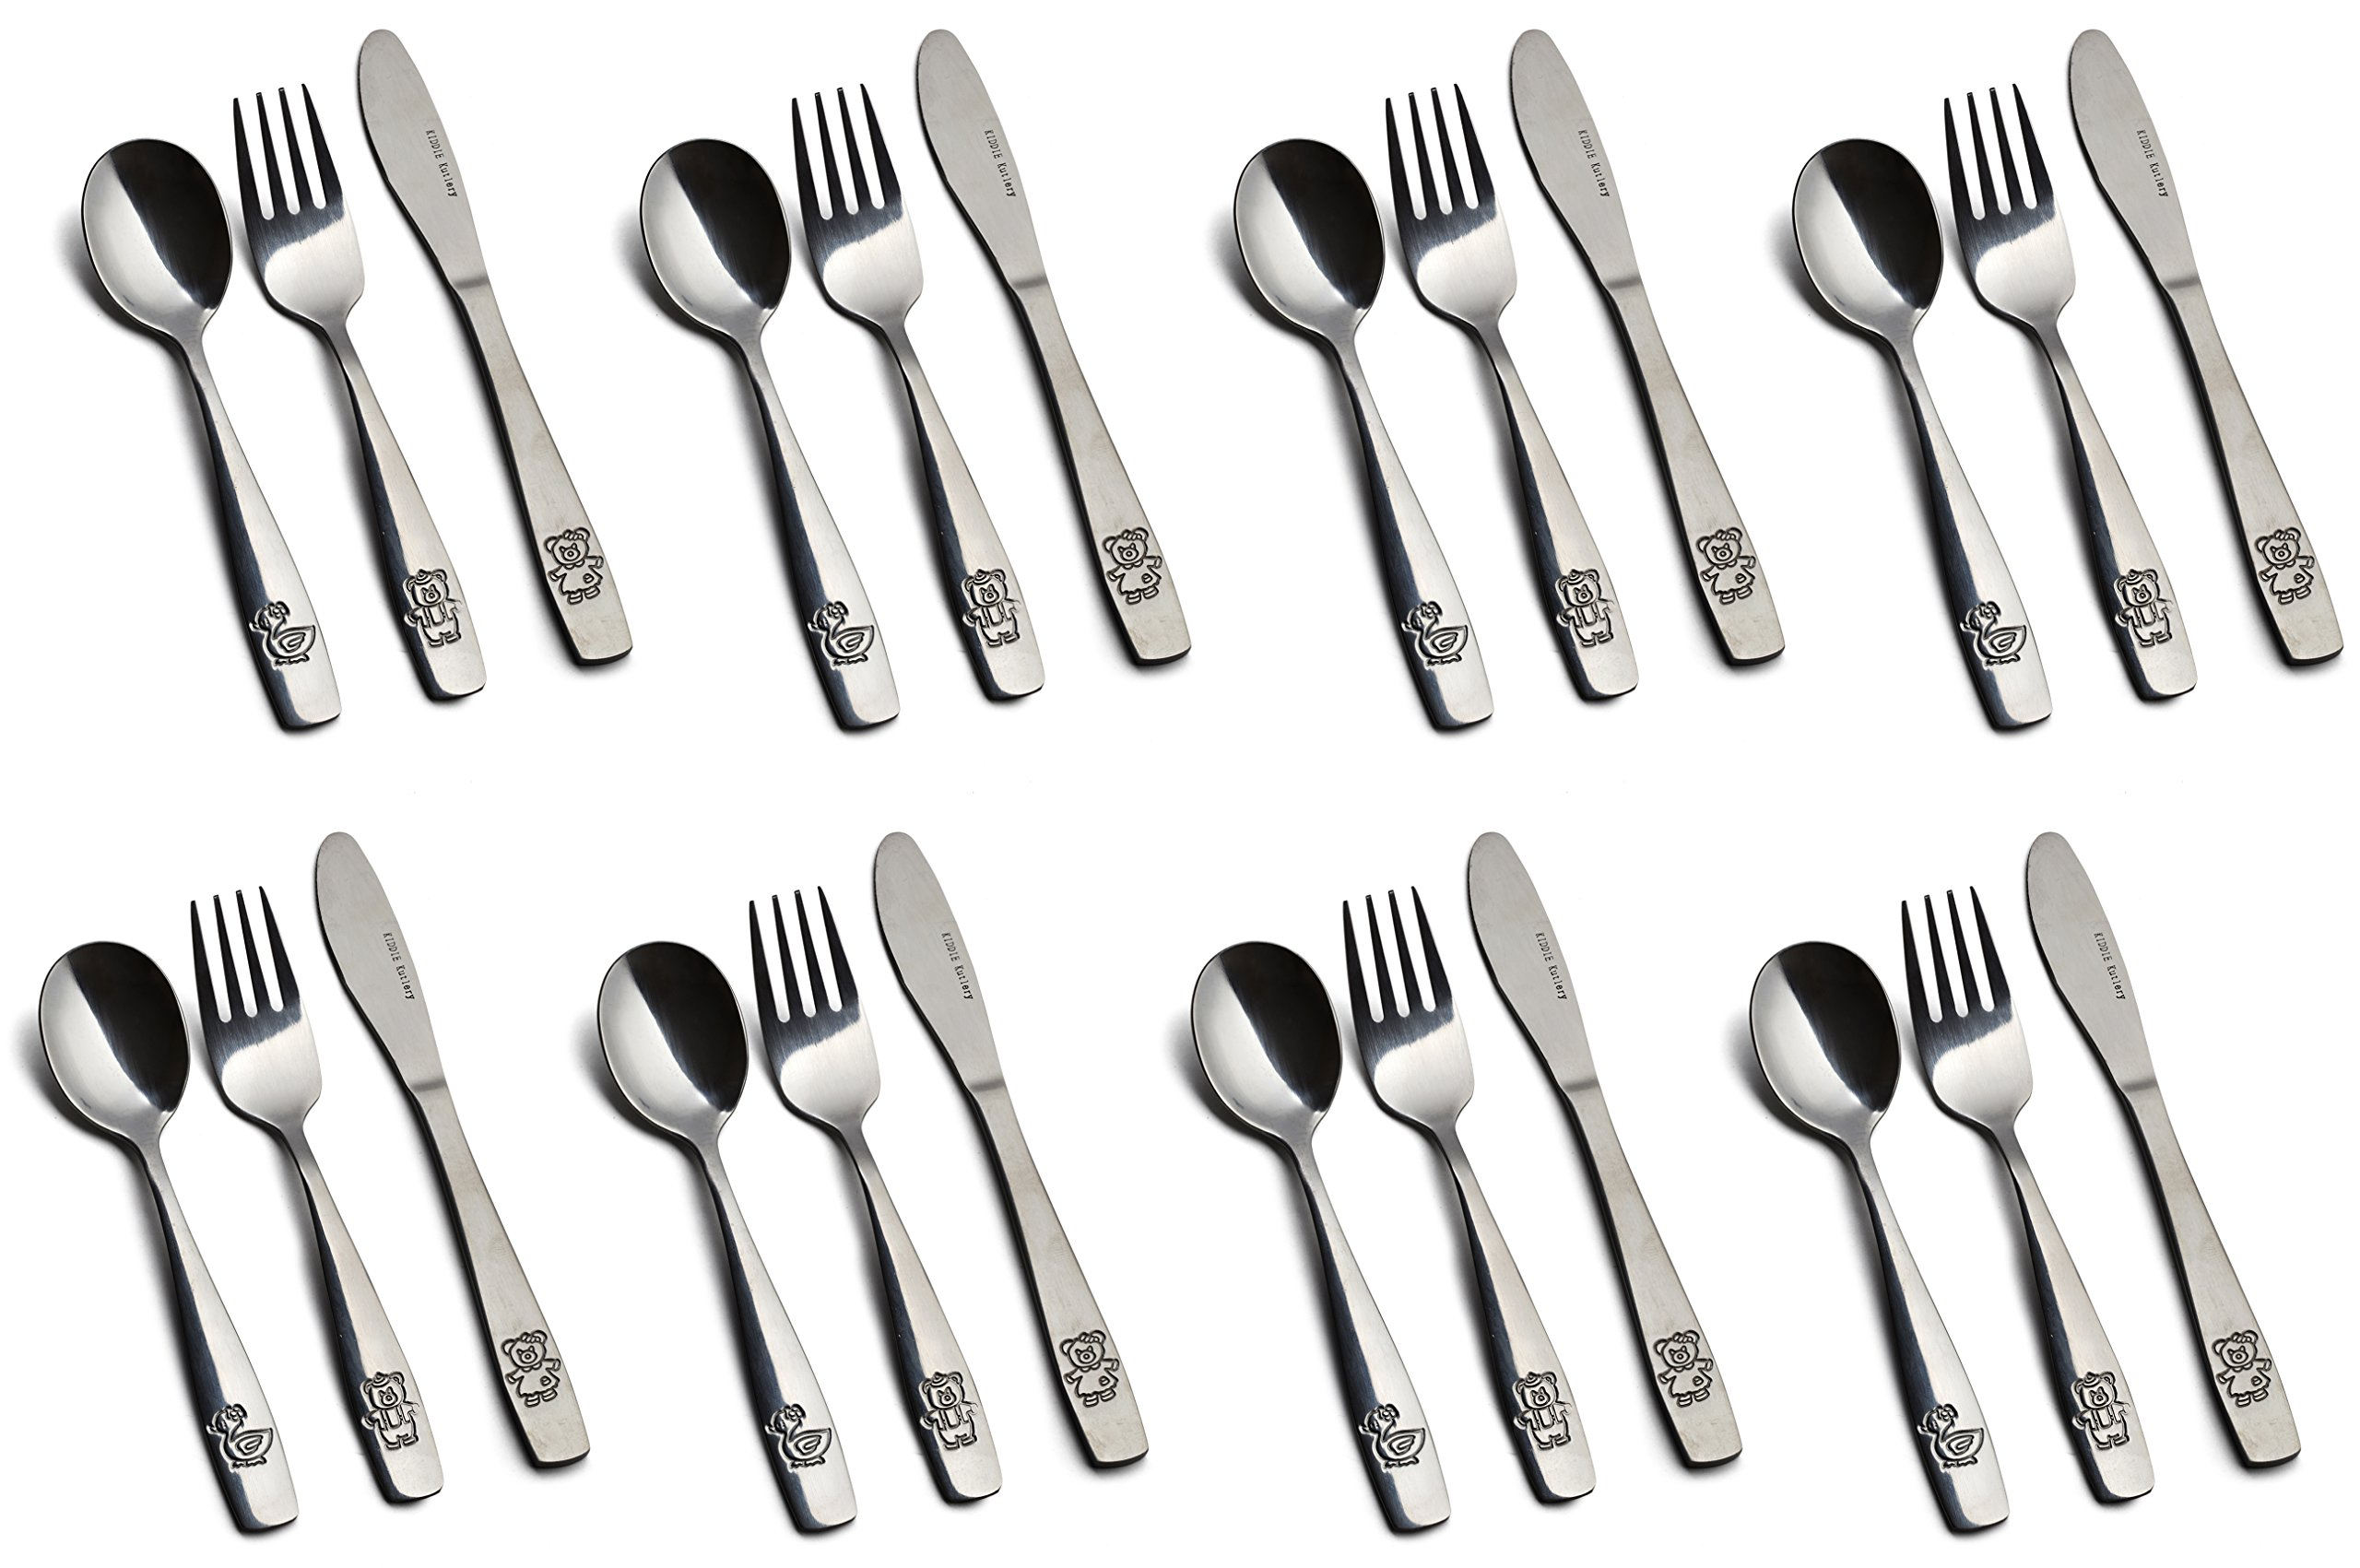 24 Piece Stainless Steel Kids Cutlery, Child and Toddler Safe Flatware, Kids Silverware, Kids Utensil Set Includes 8 Knives, 8 Forks, 8 Spoons, Total of 8 Place Settings, Ideal for Home and Preschools by GlossyEnd (Image #1)